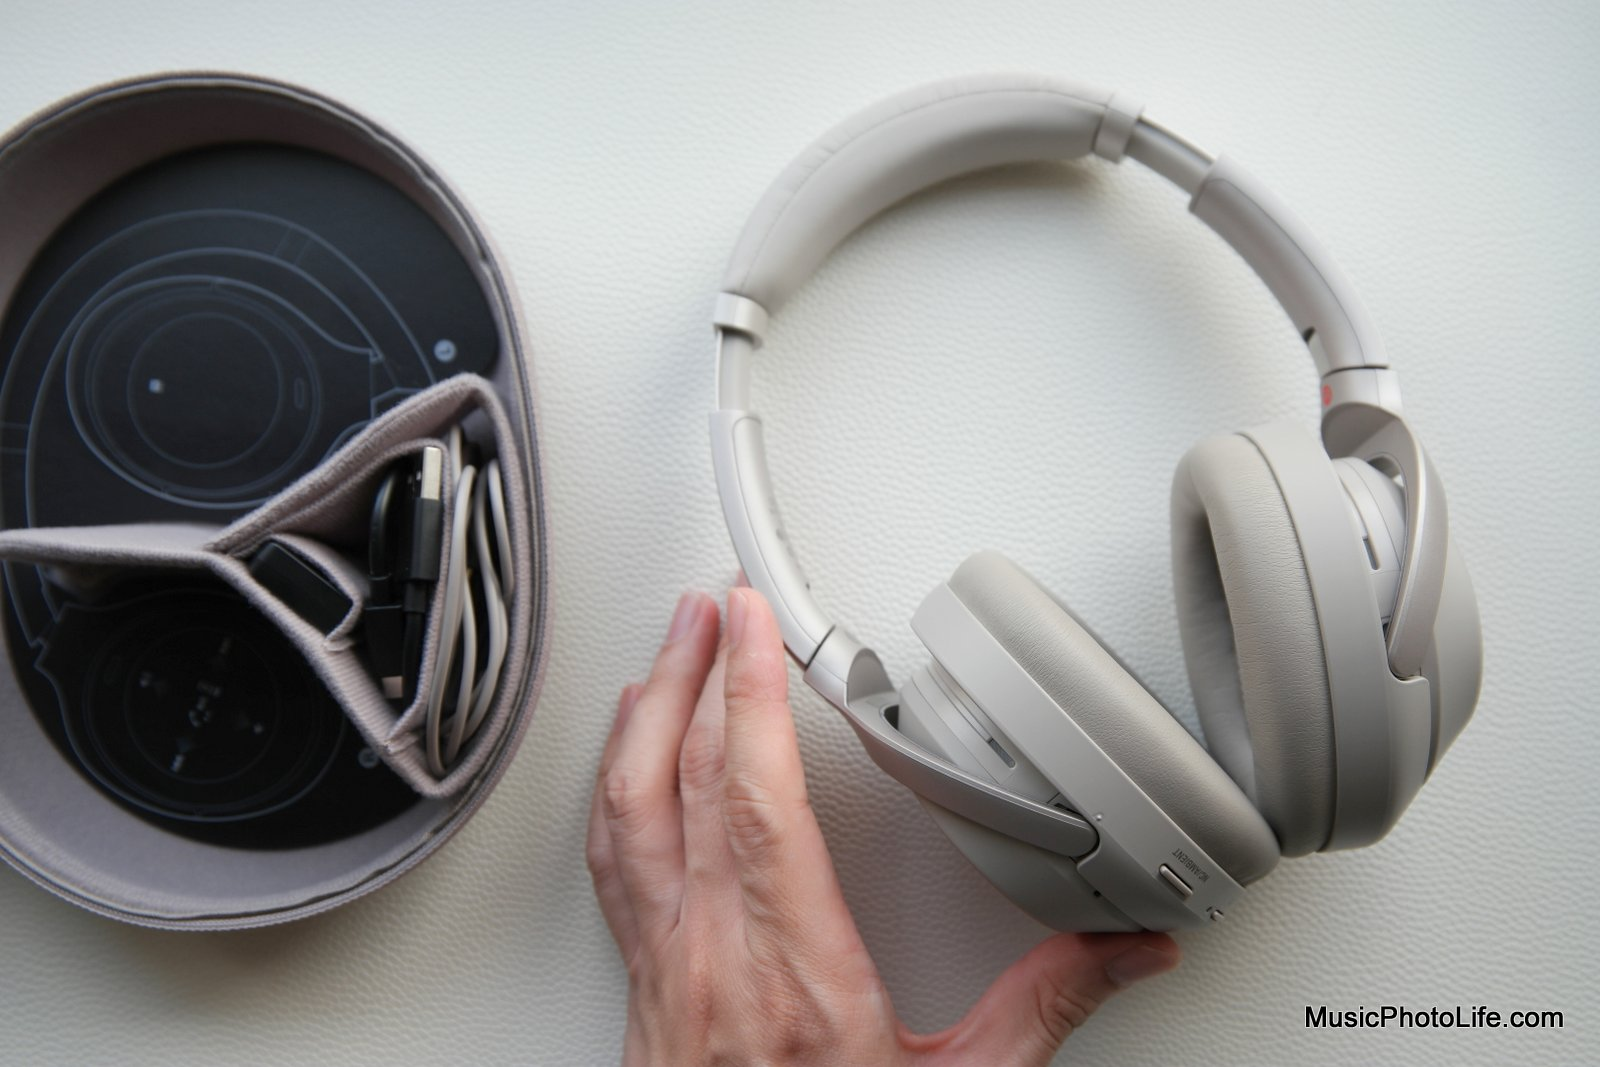 Sony WH1000X M3 review by musicphotolife.com, Singapore consumer home travel product blogger